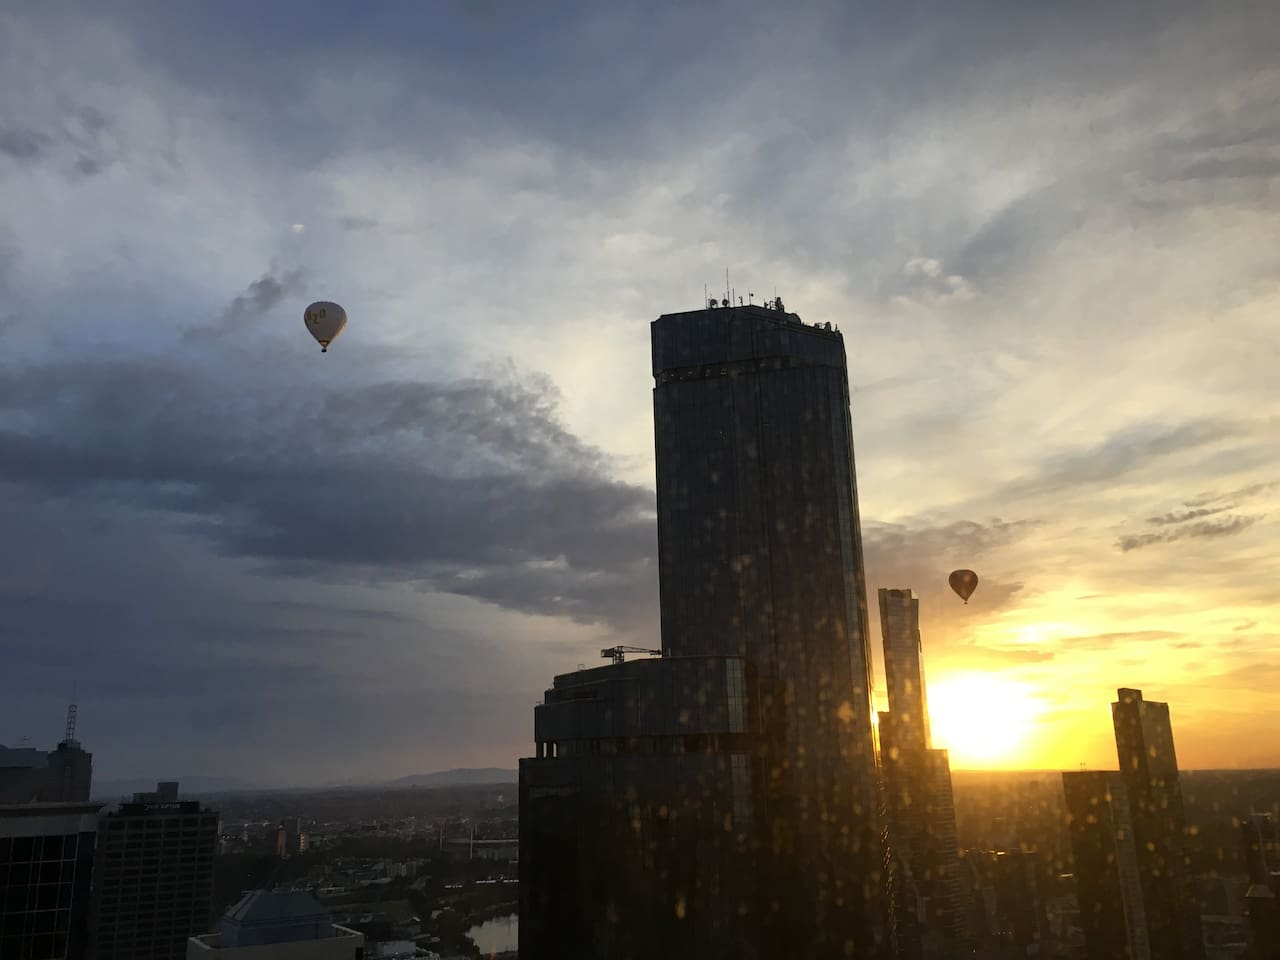 Watching hot air balloons from living room.